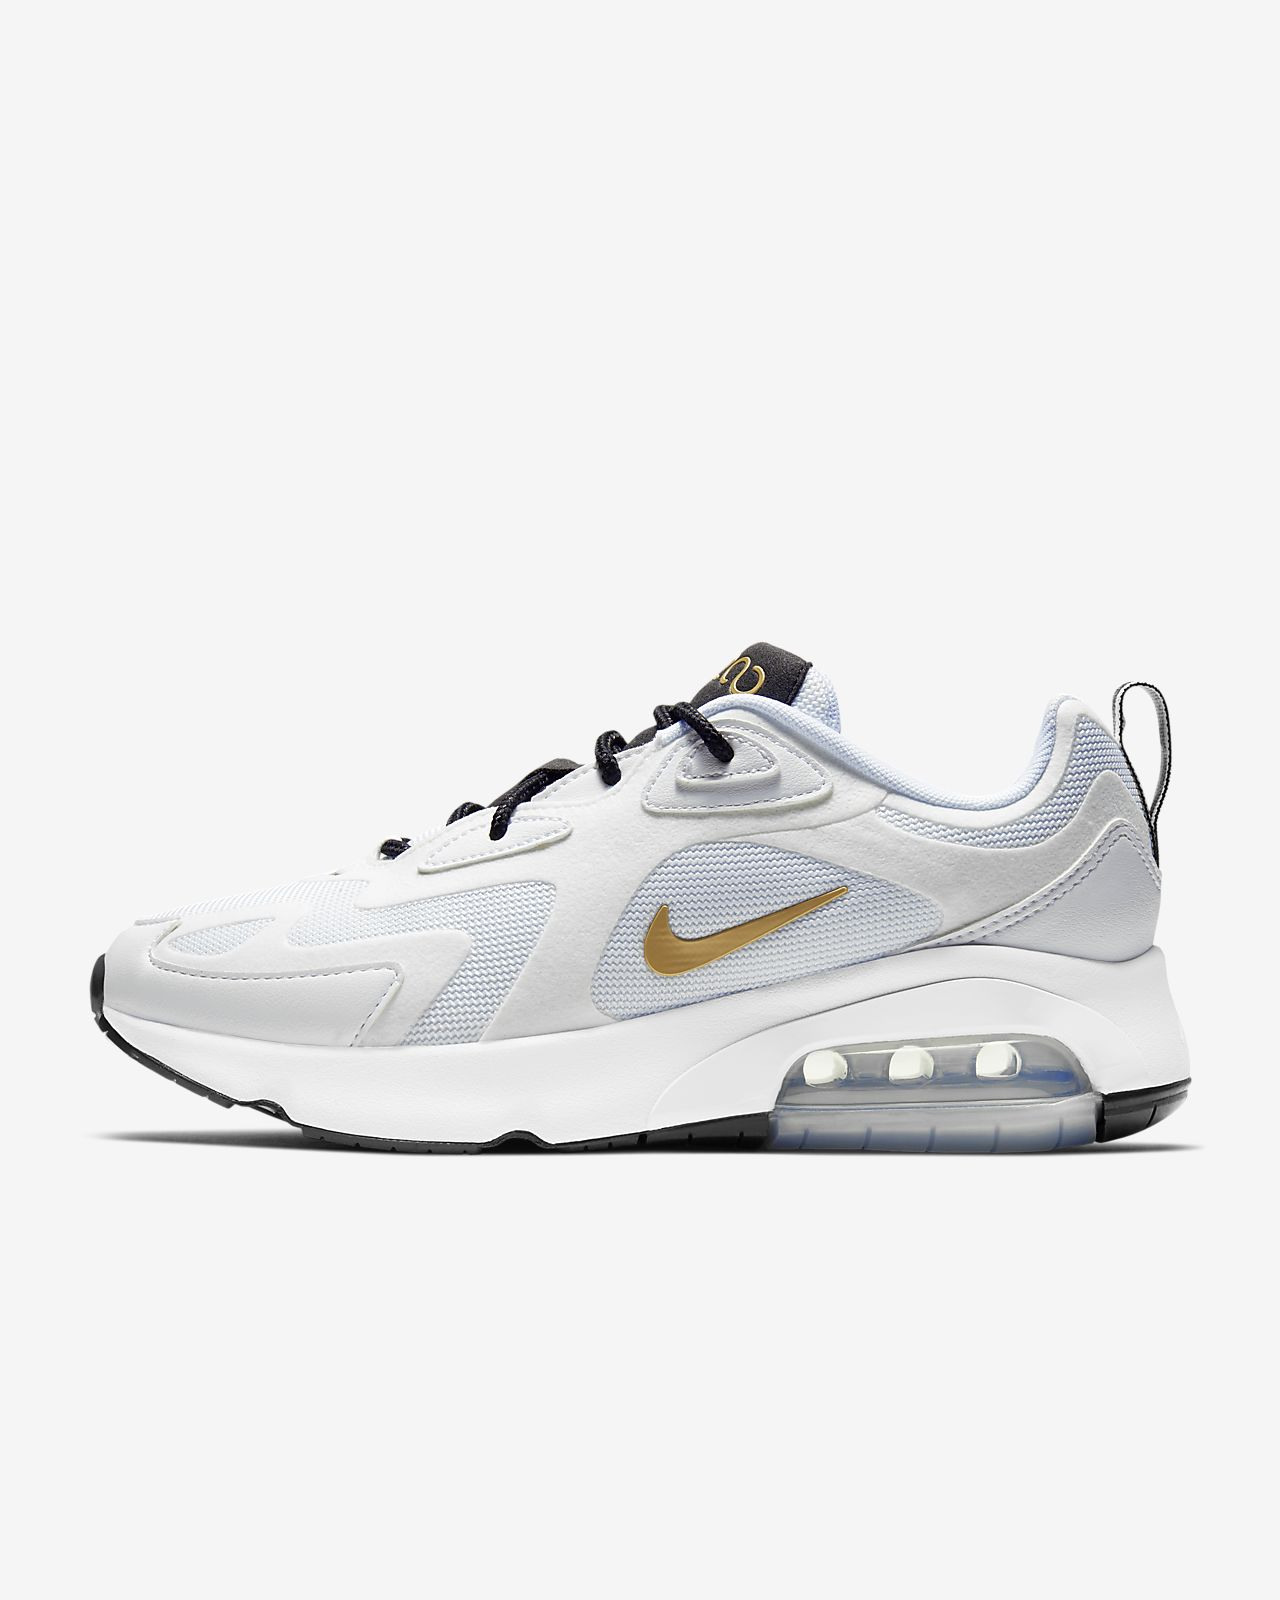 Most Active Sale Online, Too Preferential Nike Nike Air Max